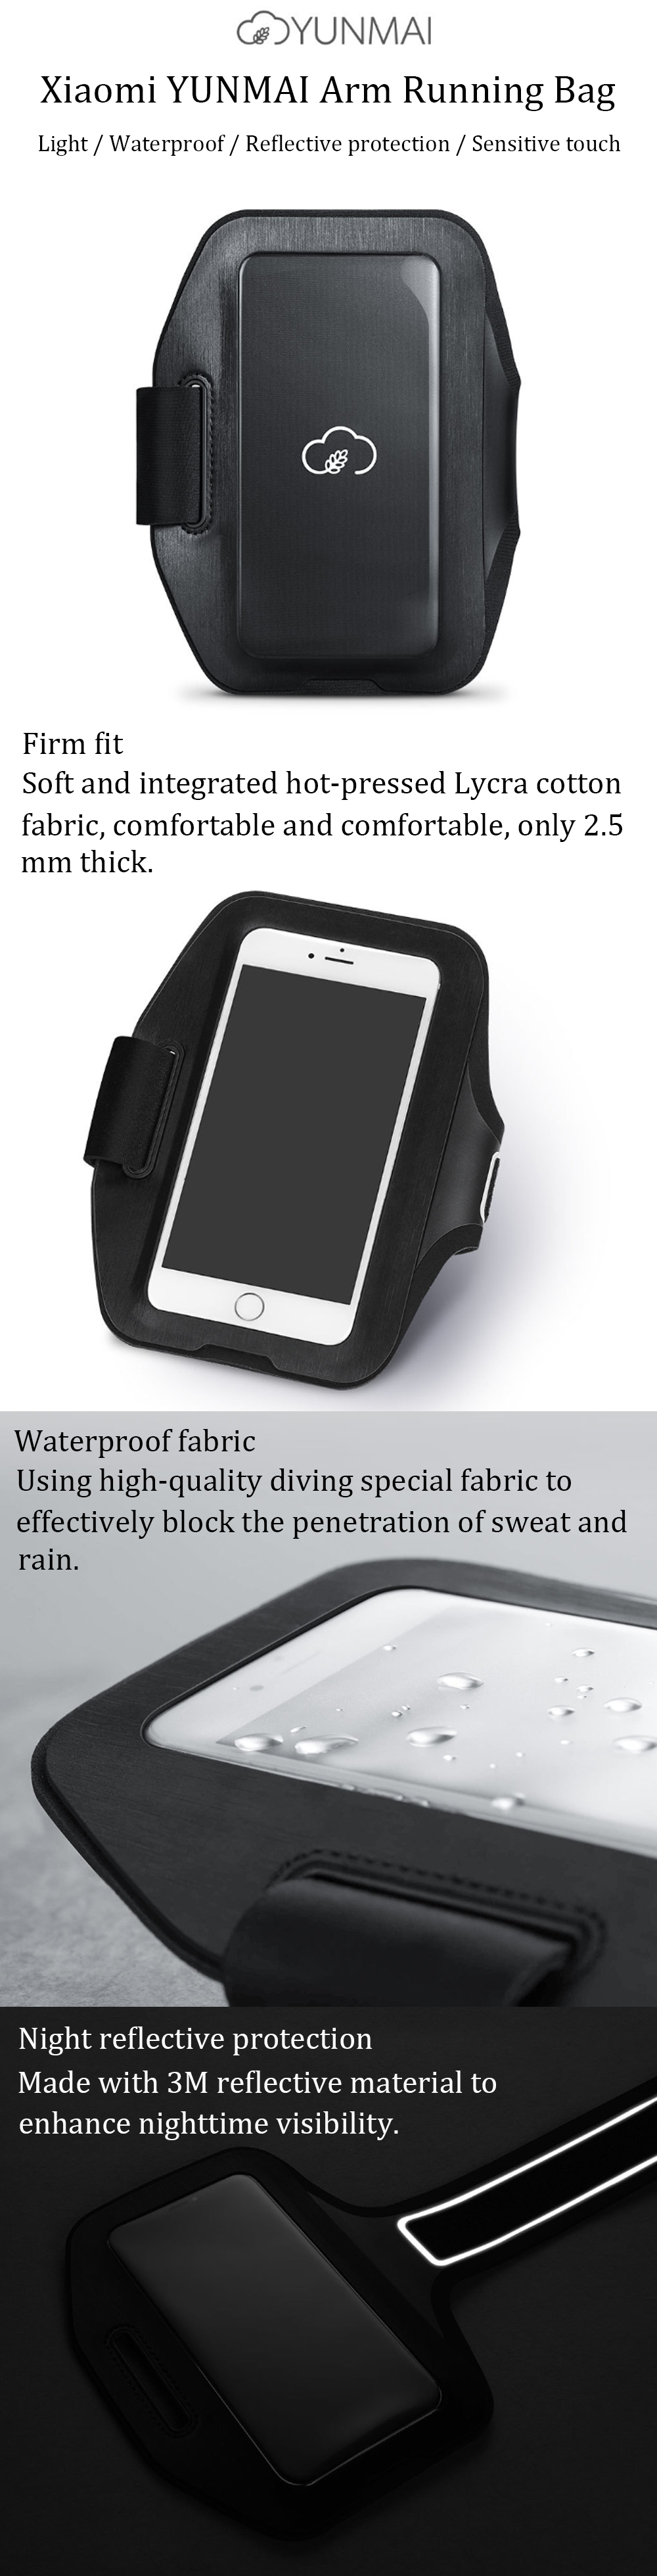 Xiaomi YUNMAI 6 Inch Waterproof Arm Bag Phone Holder Outdoor Sports Running Reflective Pouch For iPhone X